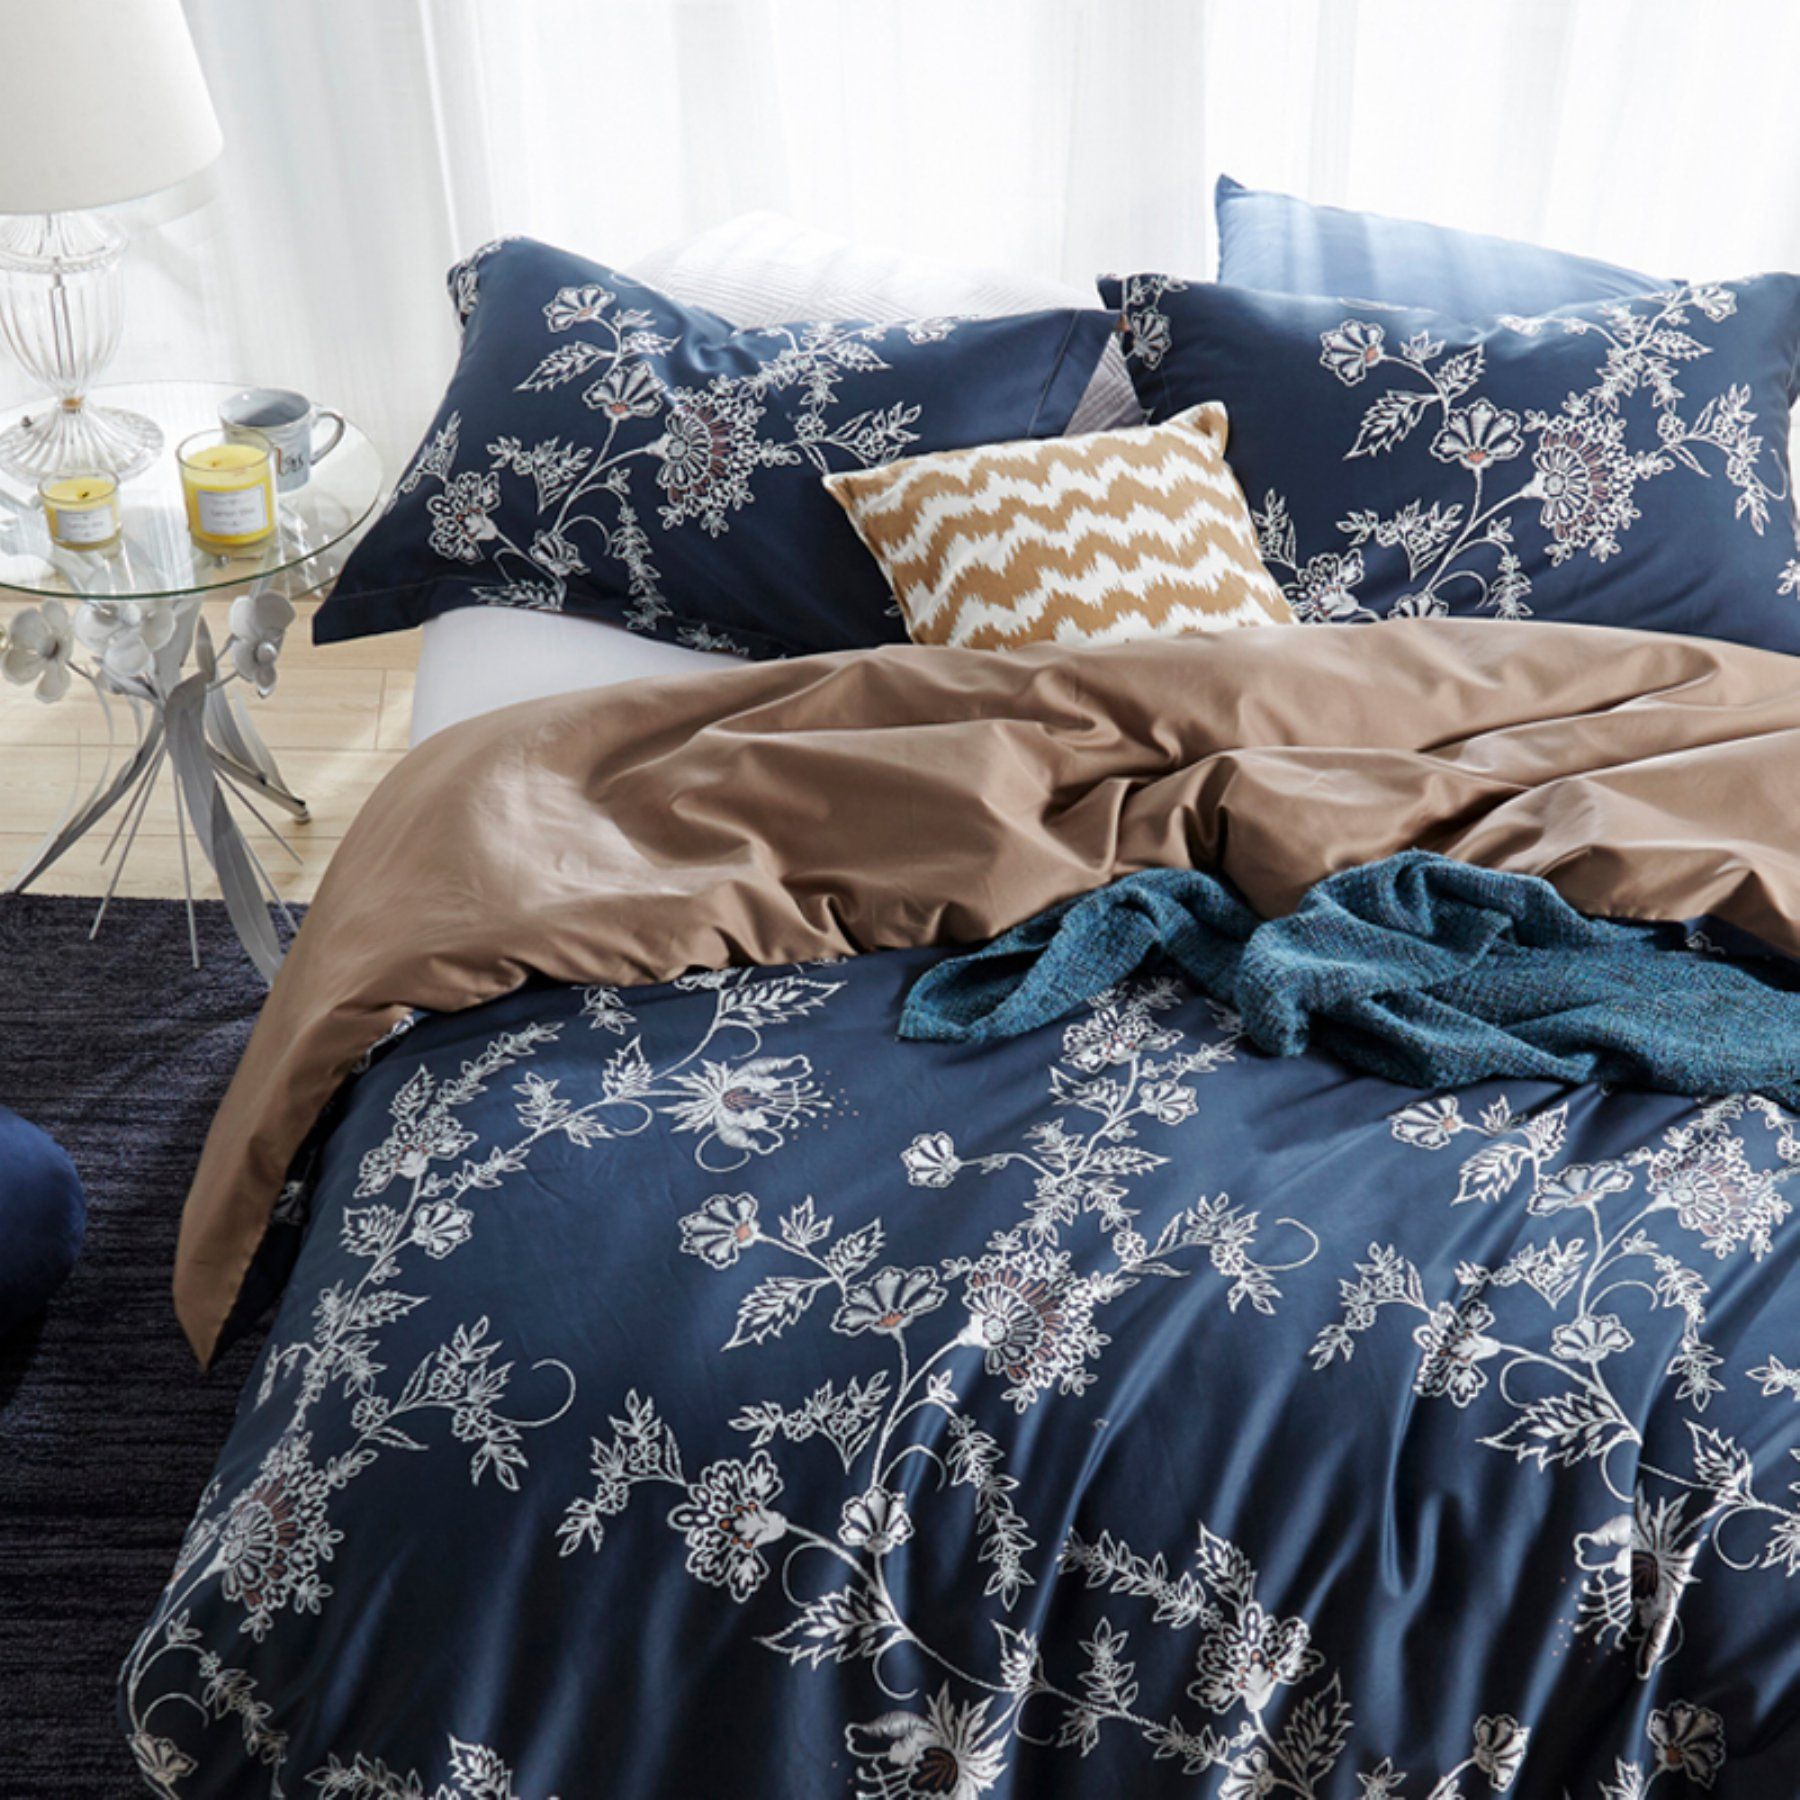 Moxie Vines Duvet Set  Navy By Byourbed  141Duvt Byb Txl